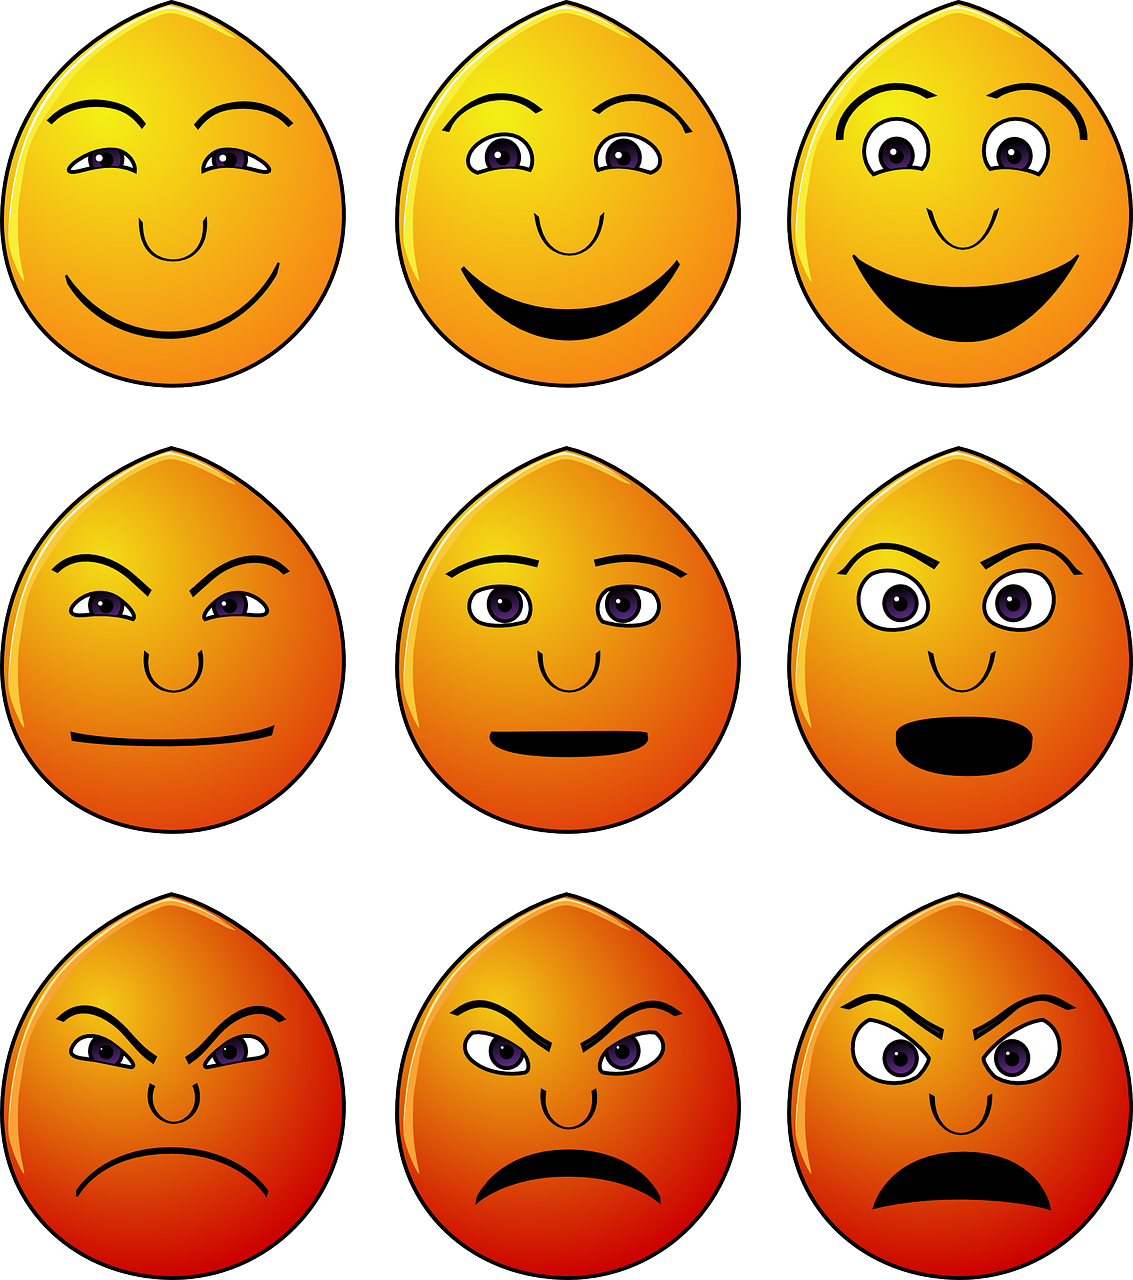 How to Make an Angry Face